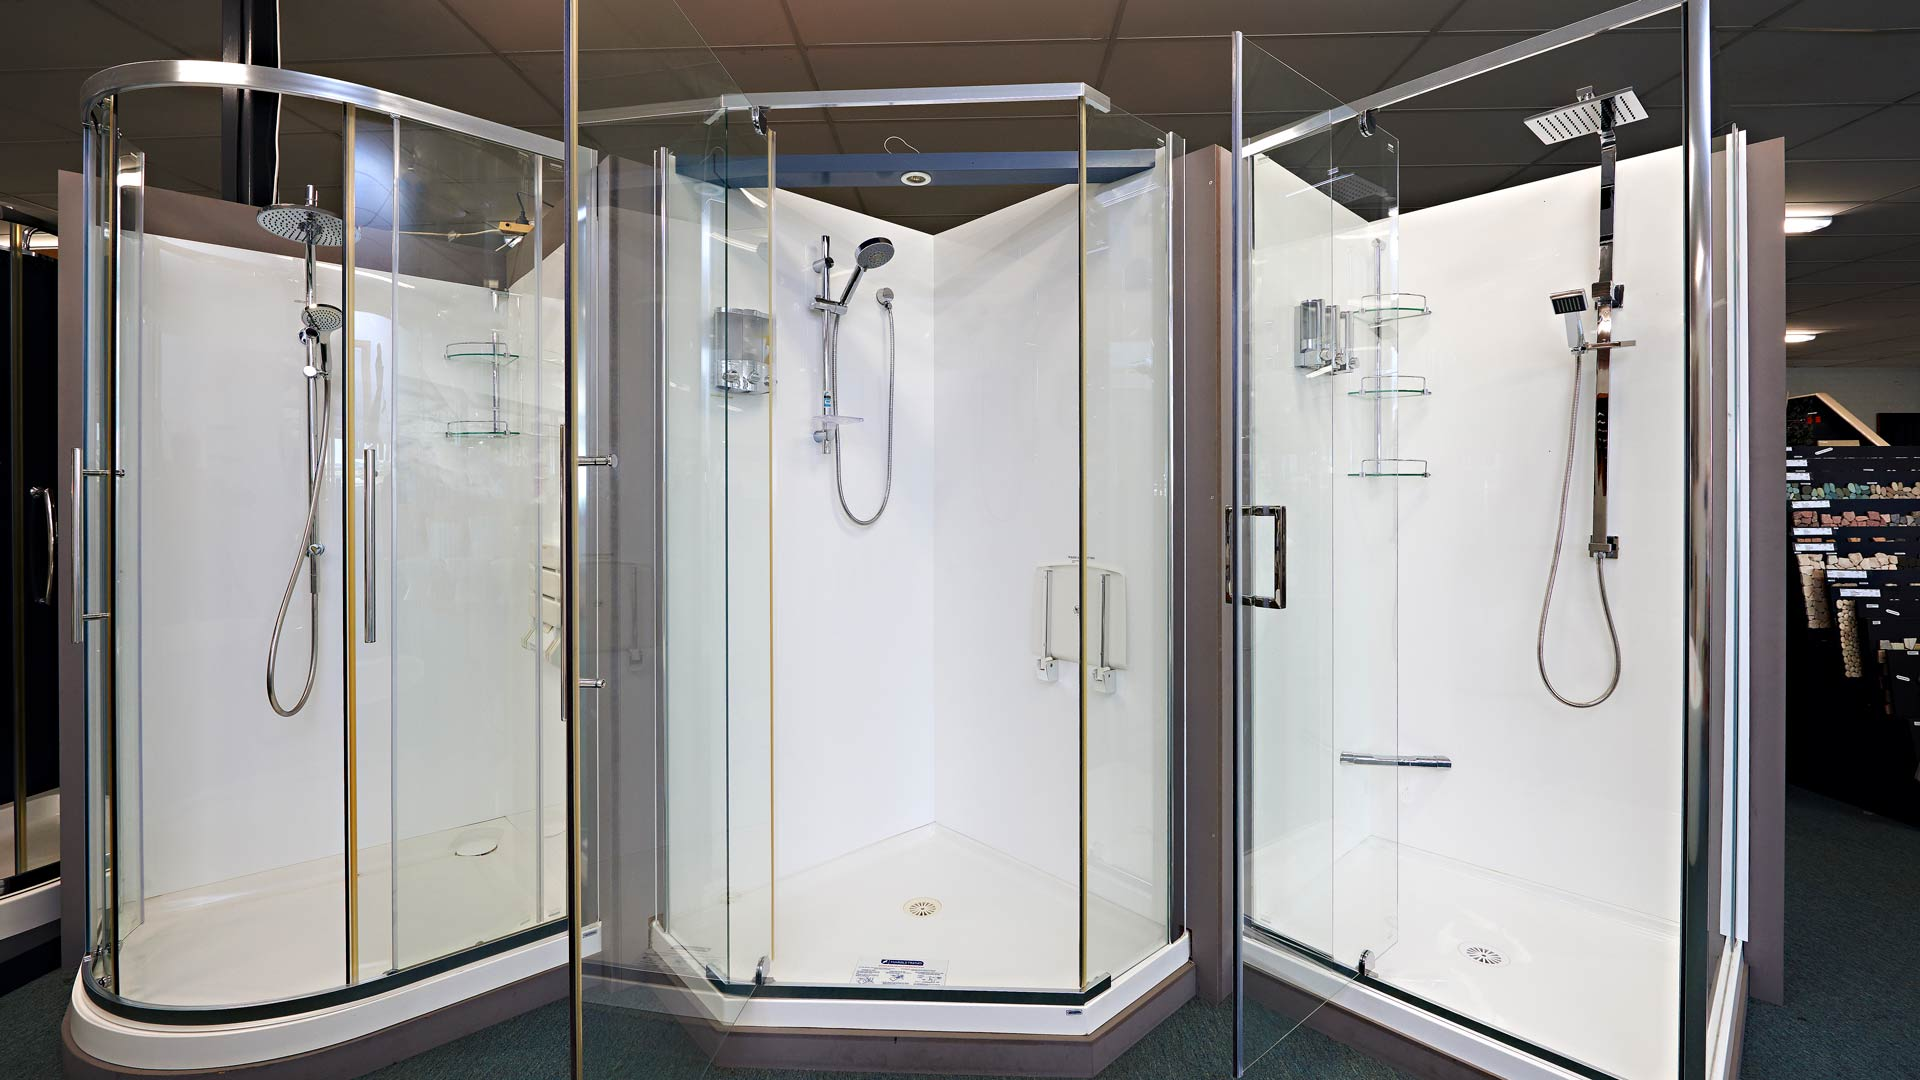 Showers at Bathroom Decor & Tiles Albany